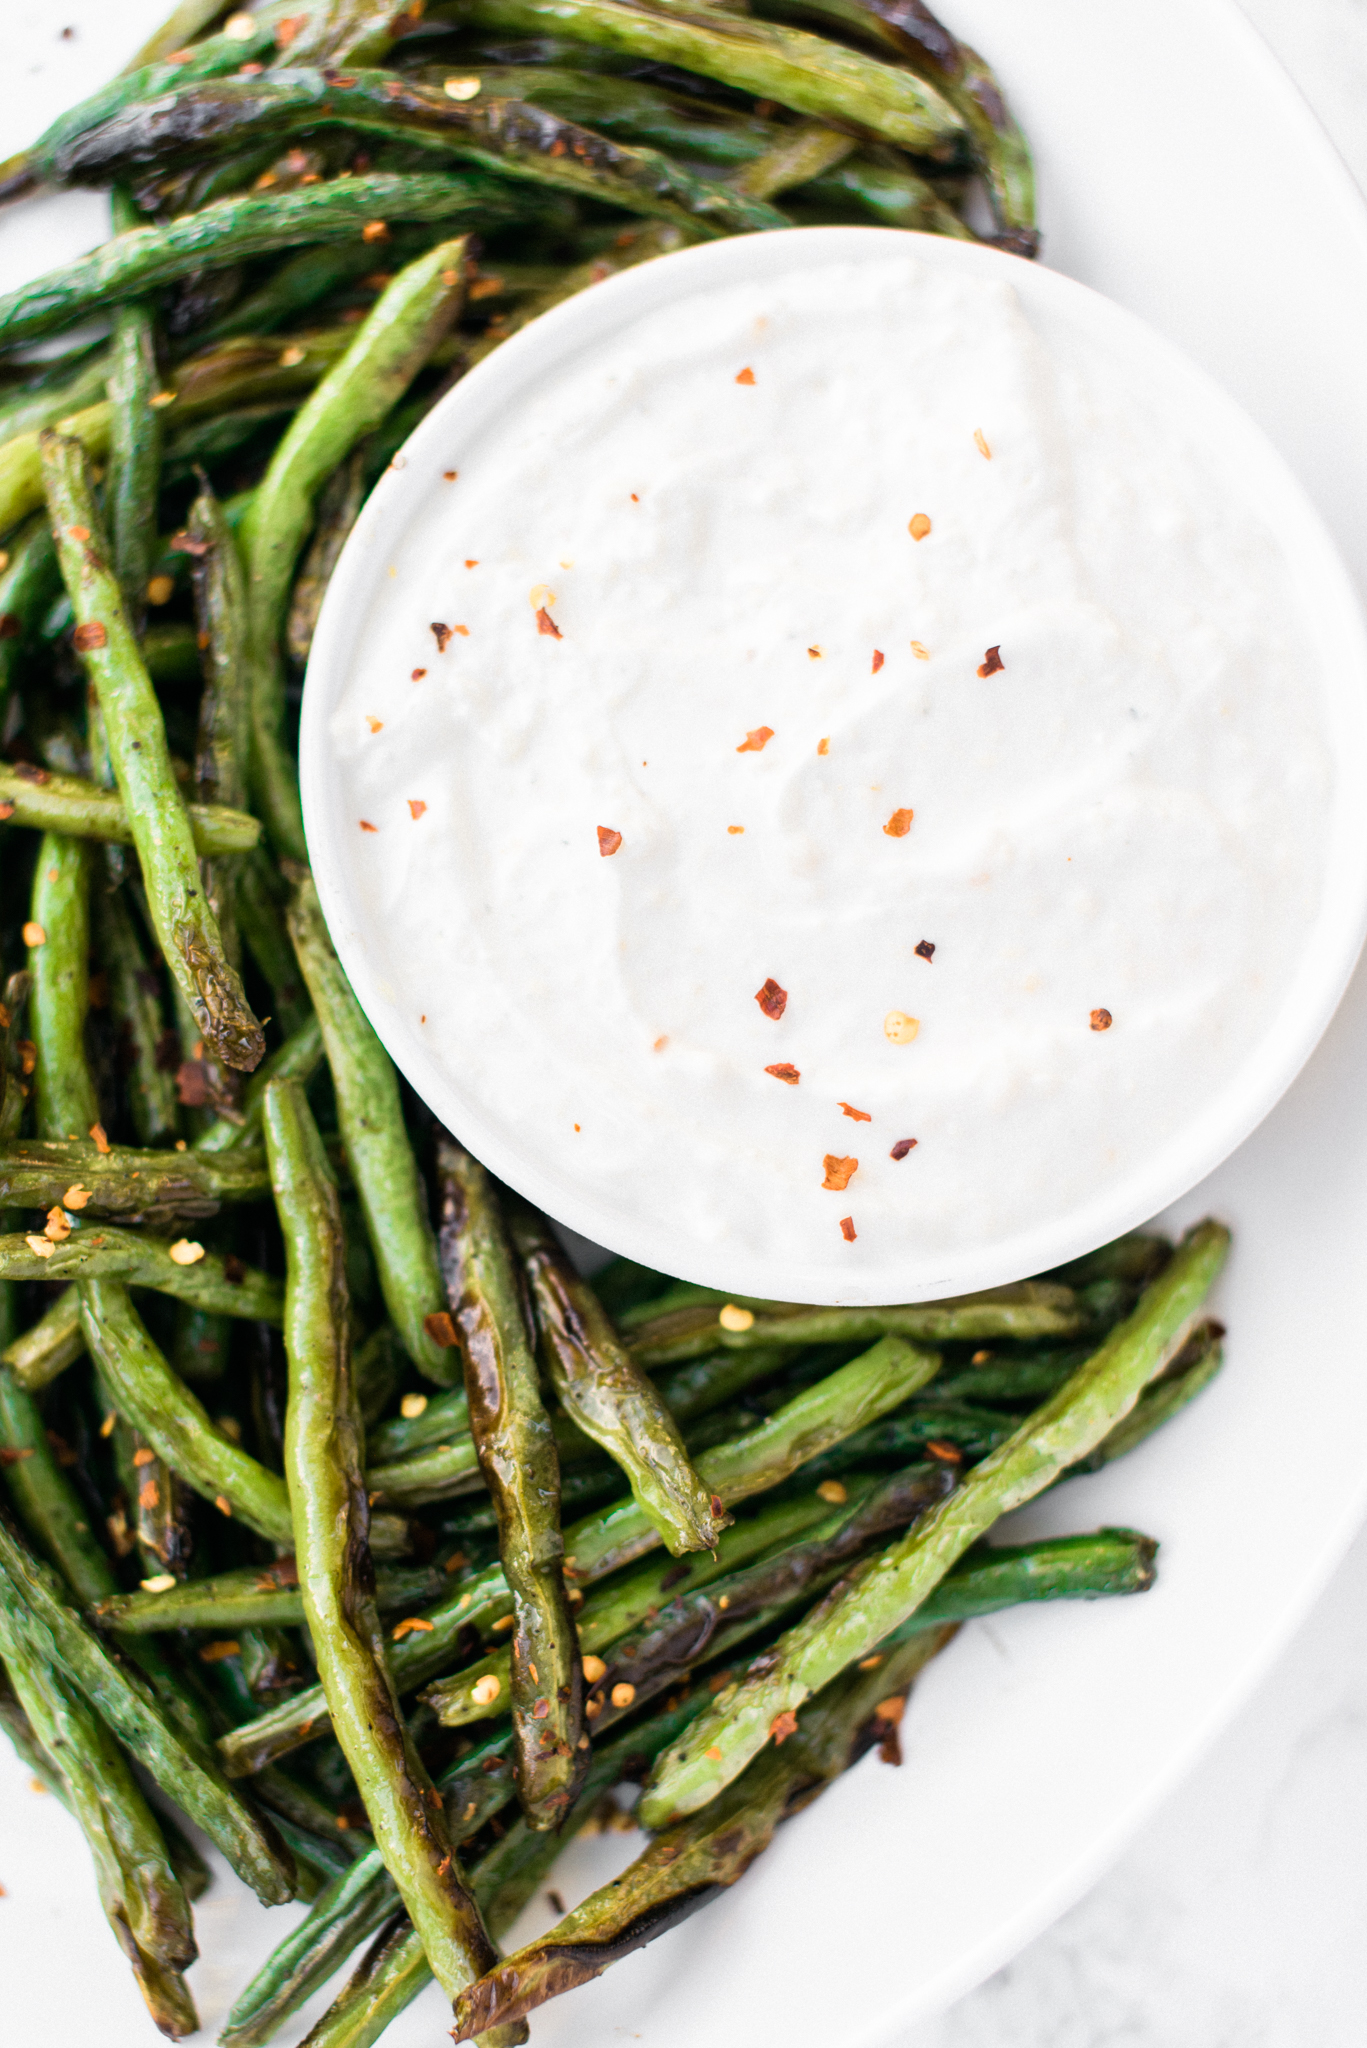 Crispy Green Beans with Garlic Dipping Sauce- a healthy and addictive snack!